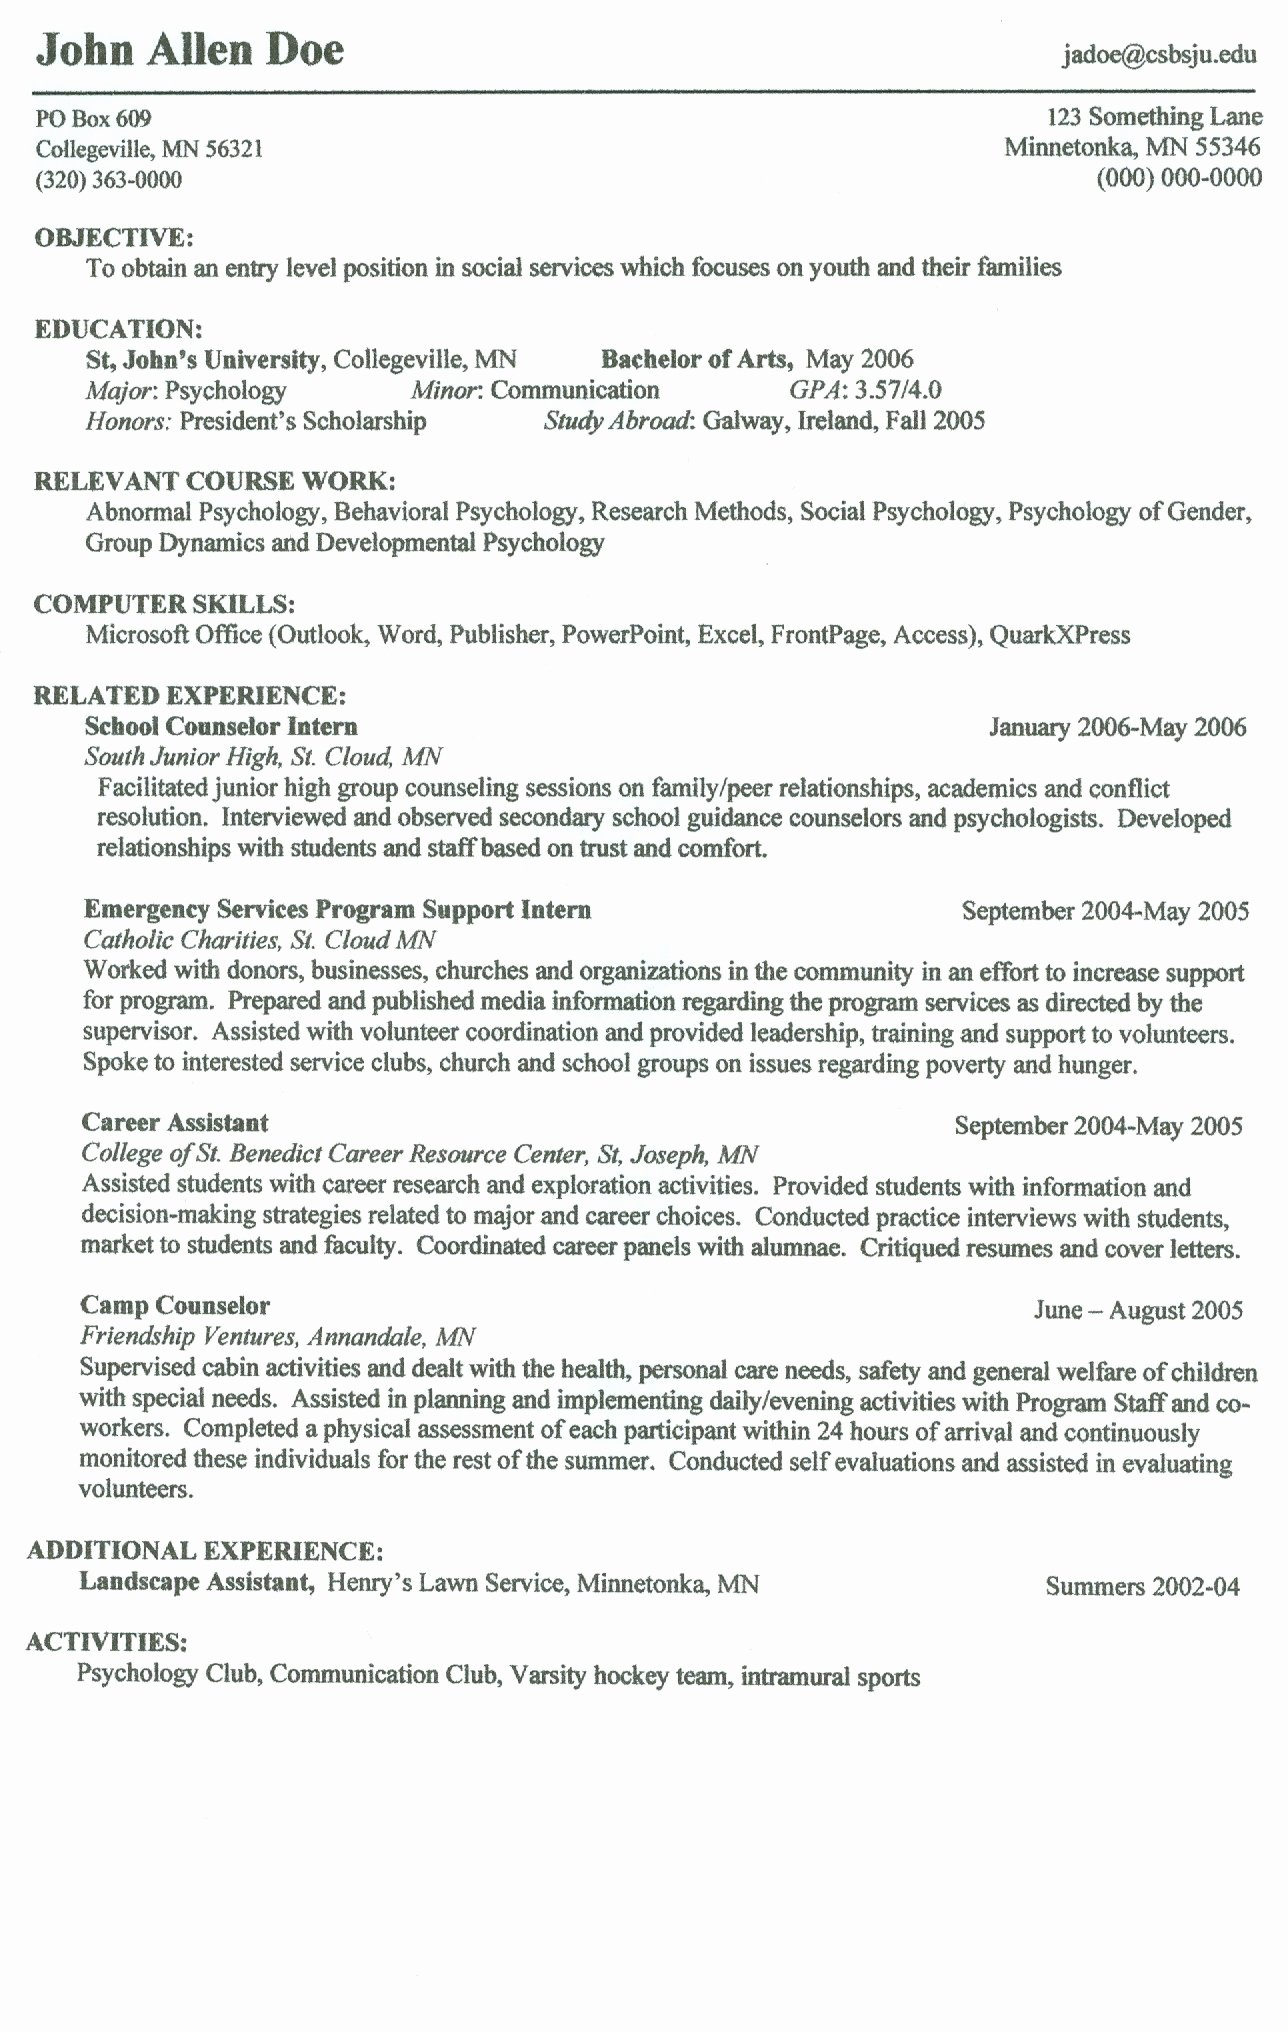 22 New Dispatcher Job Description Resume